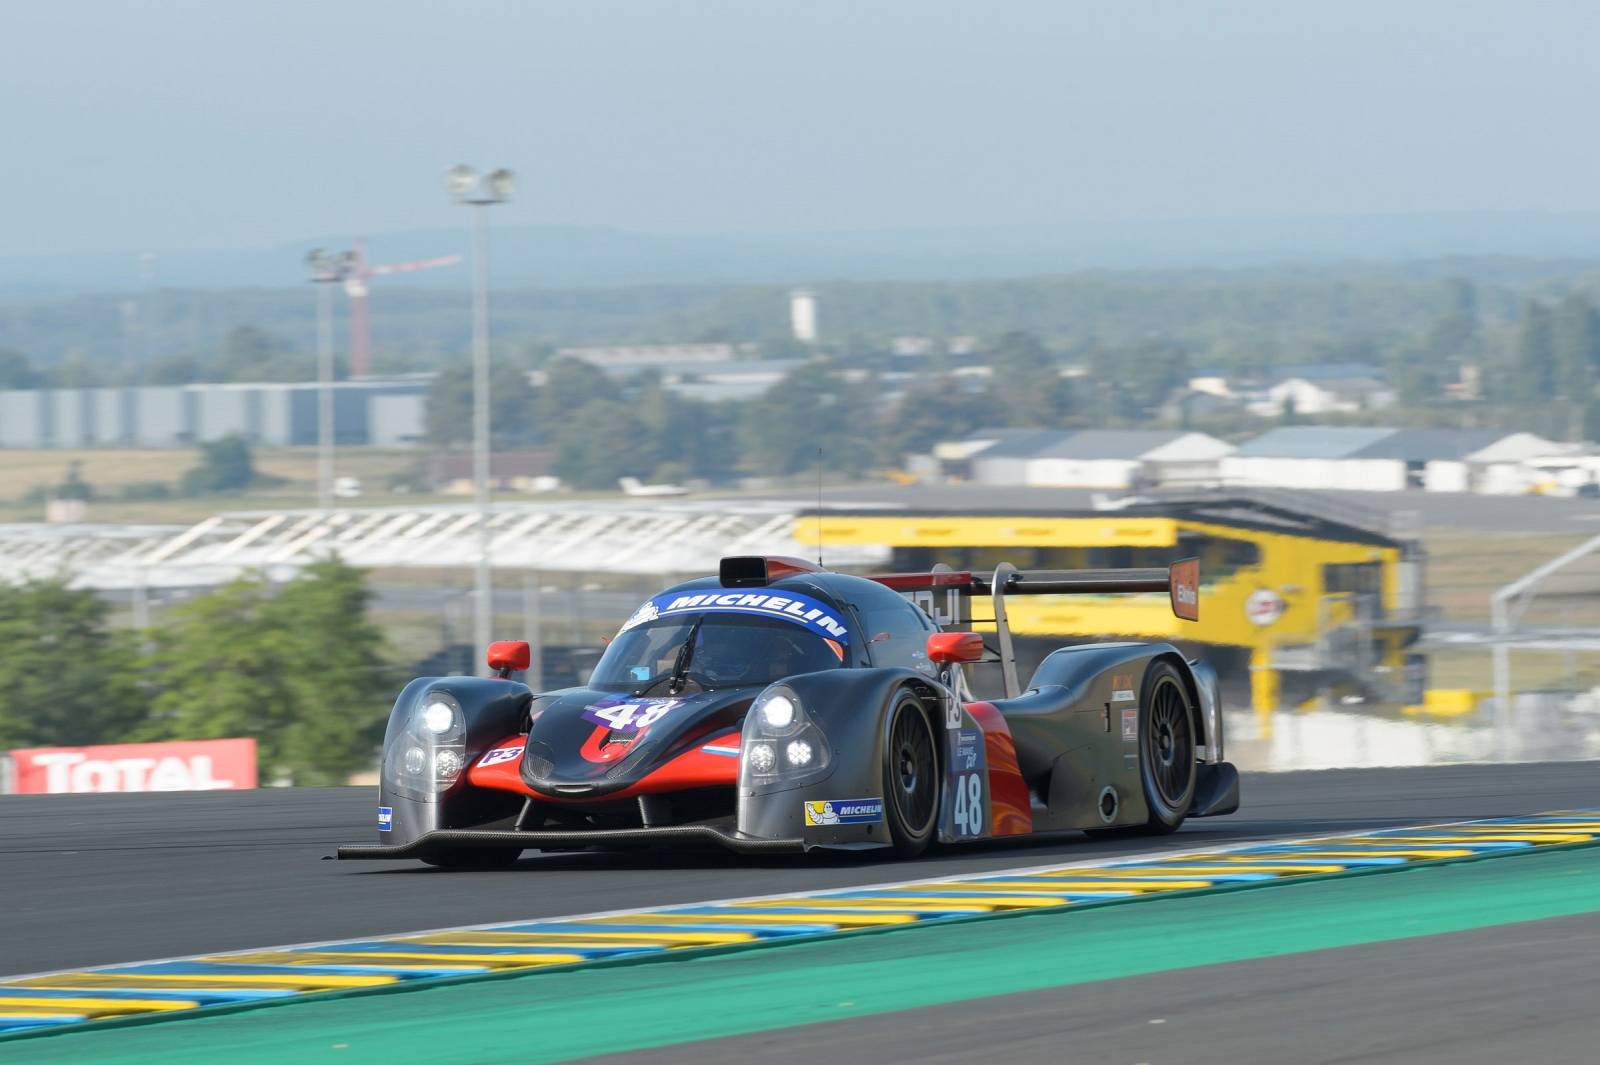 peter-kox-road-to-le-mans-lmp3-04